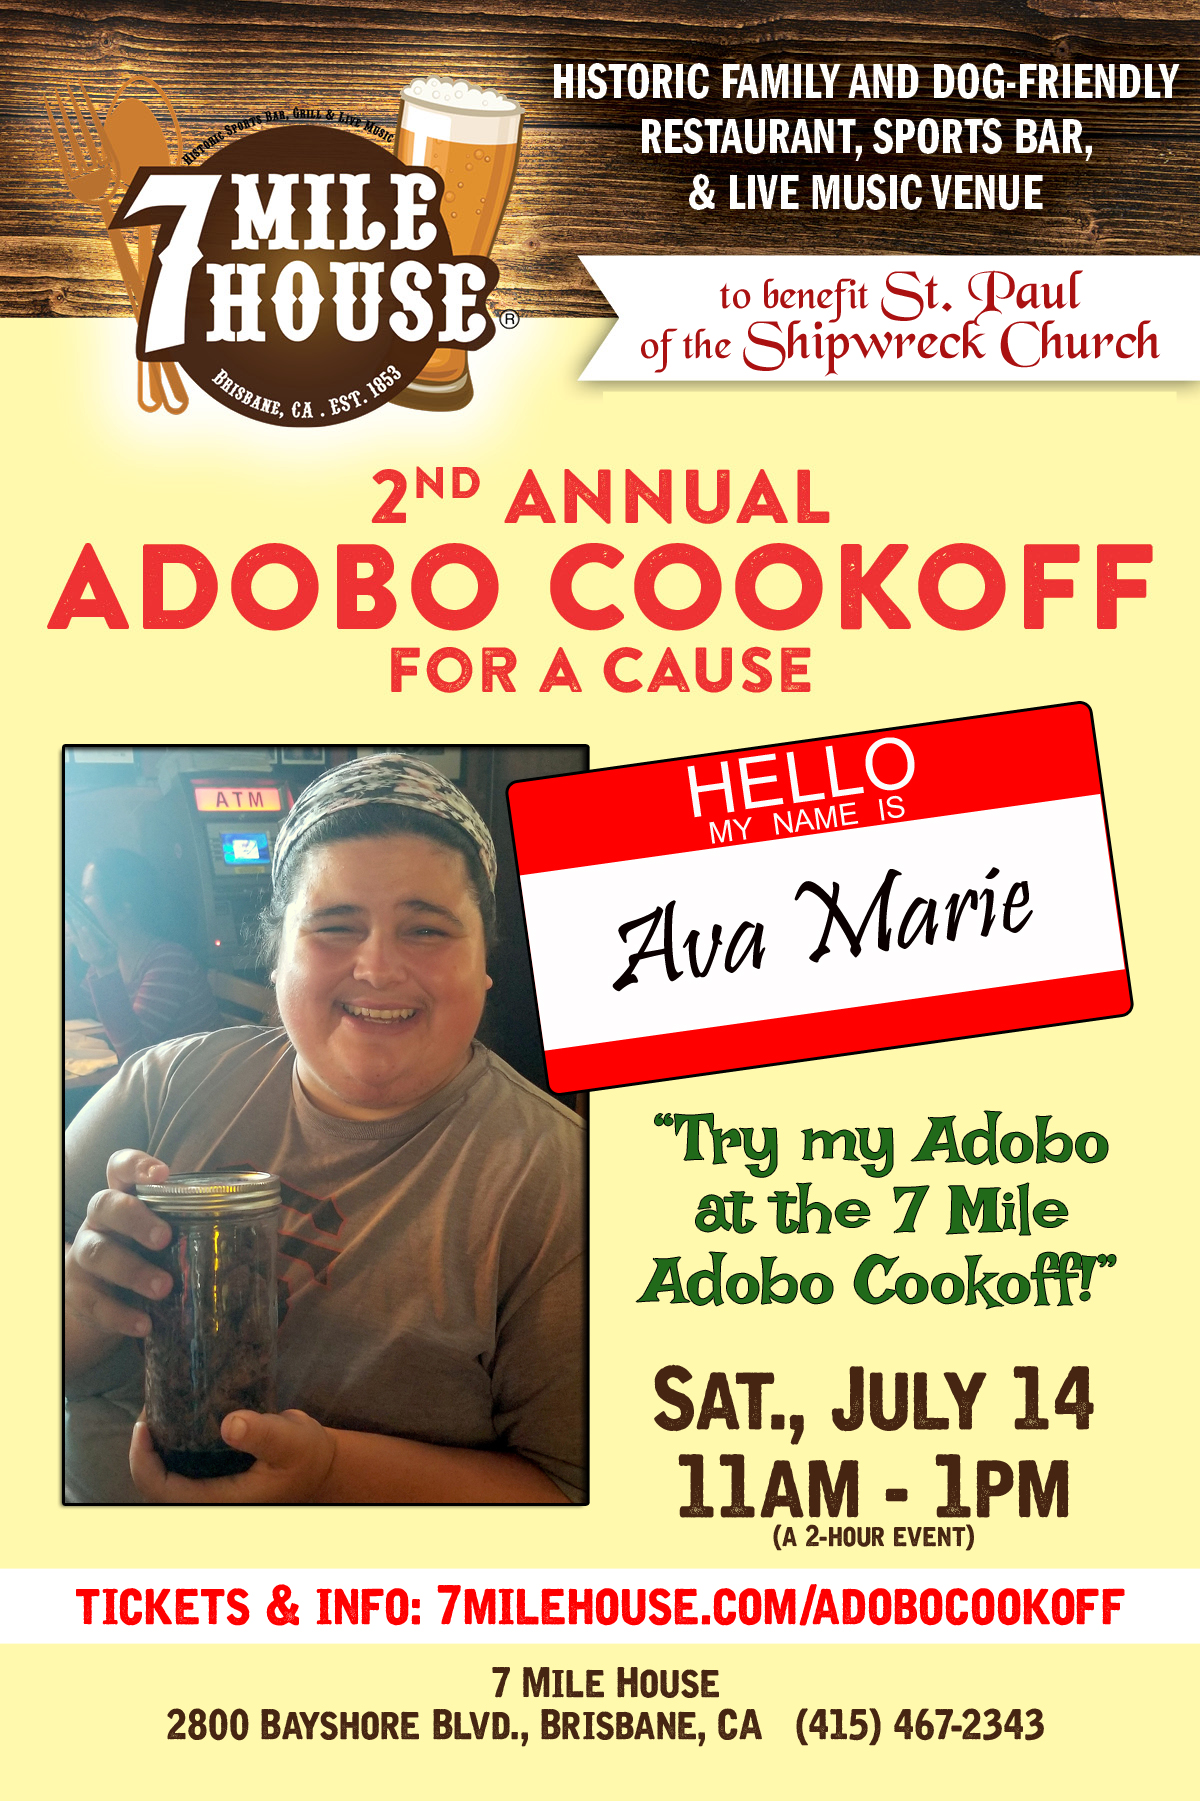 "Ava Marie - ""I'm a food blogger born with autism and a contest cook from South San Francisco California. I was born into a Swedish Norwegian Mexican household. My Adobo tastes good because I got this recipe from my longtime neighbor who is half Filipino. I am known for making chili in South San Francisco and won 3 honorable mentions as well as red, white and blue ribbon awards at the San Mateo County Fair culinary arts. I may be the underdog against these Filipino mama's but am super competitive and let's do this!!!"""